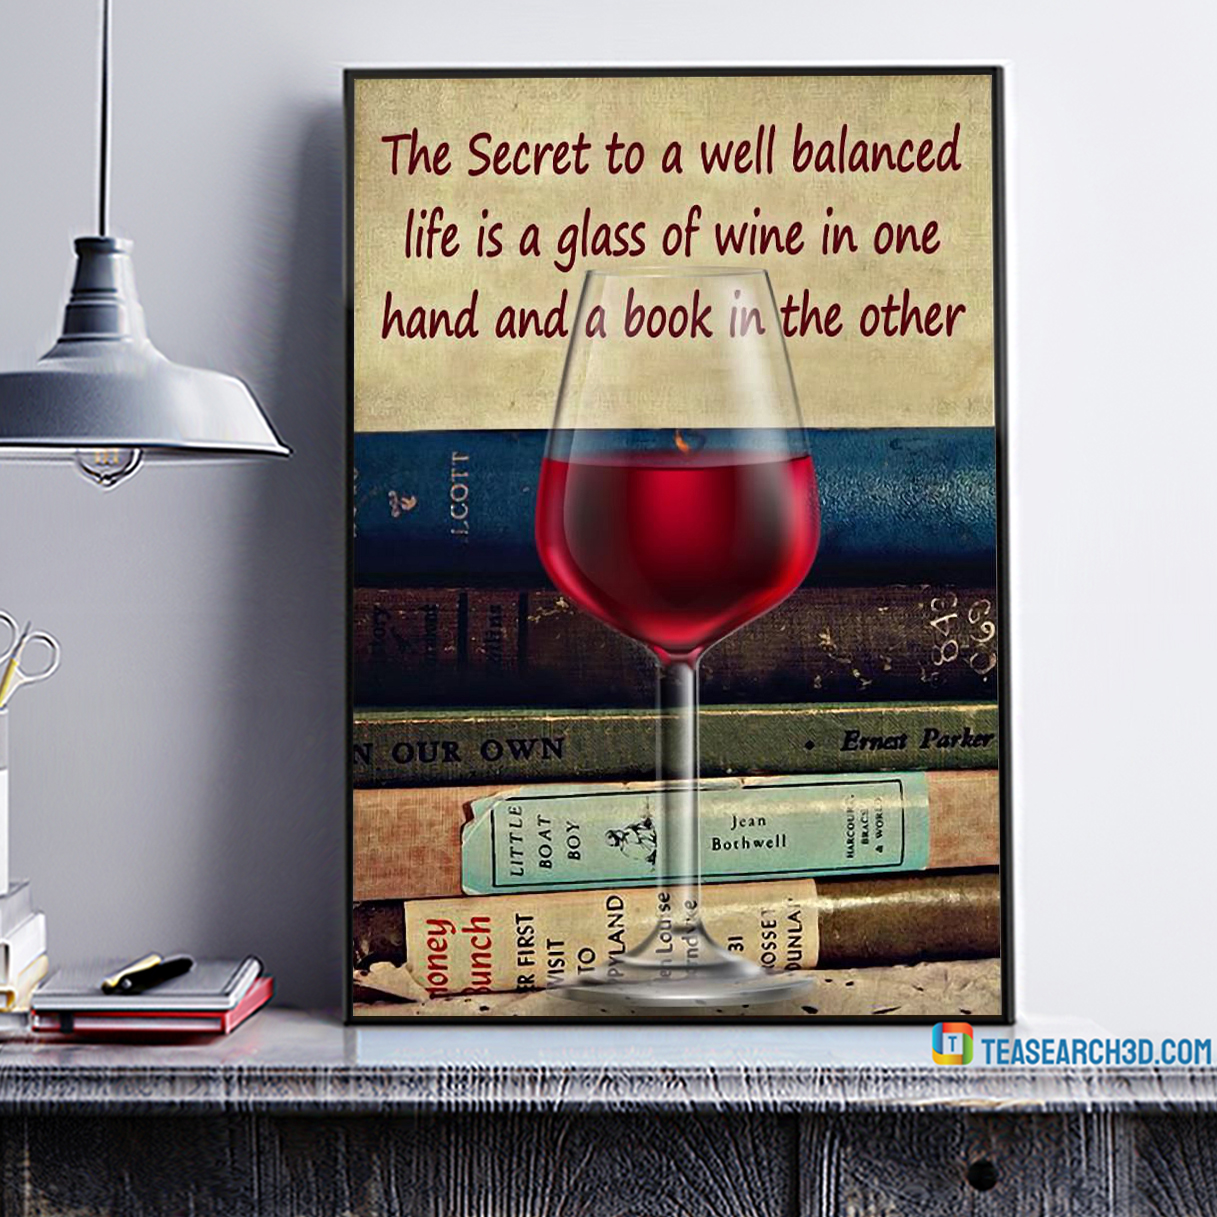 Secret to well balanced life is a glass of wine poster